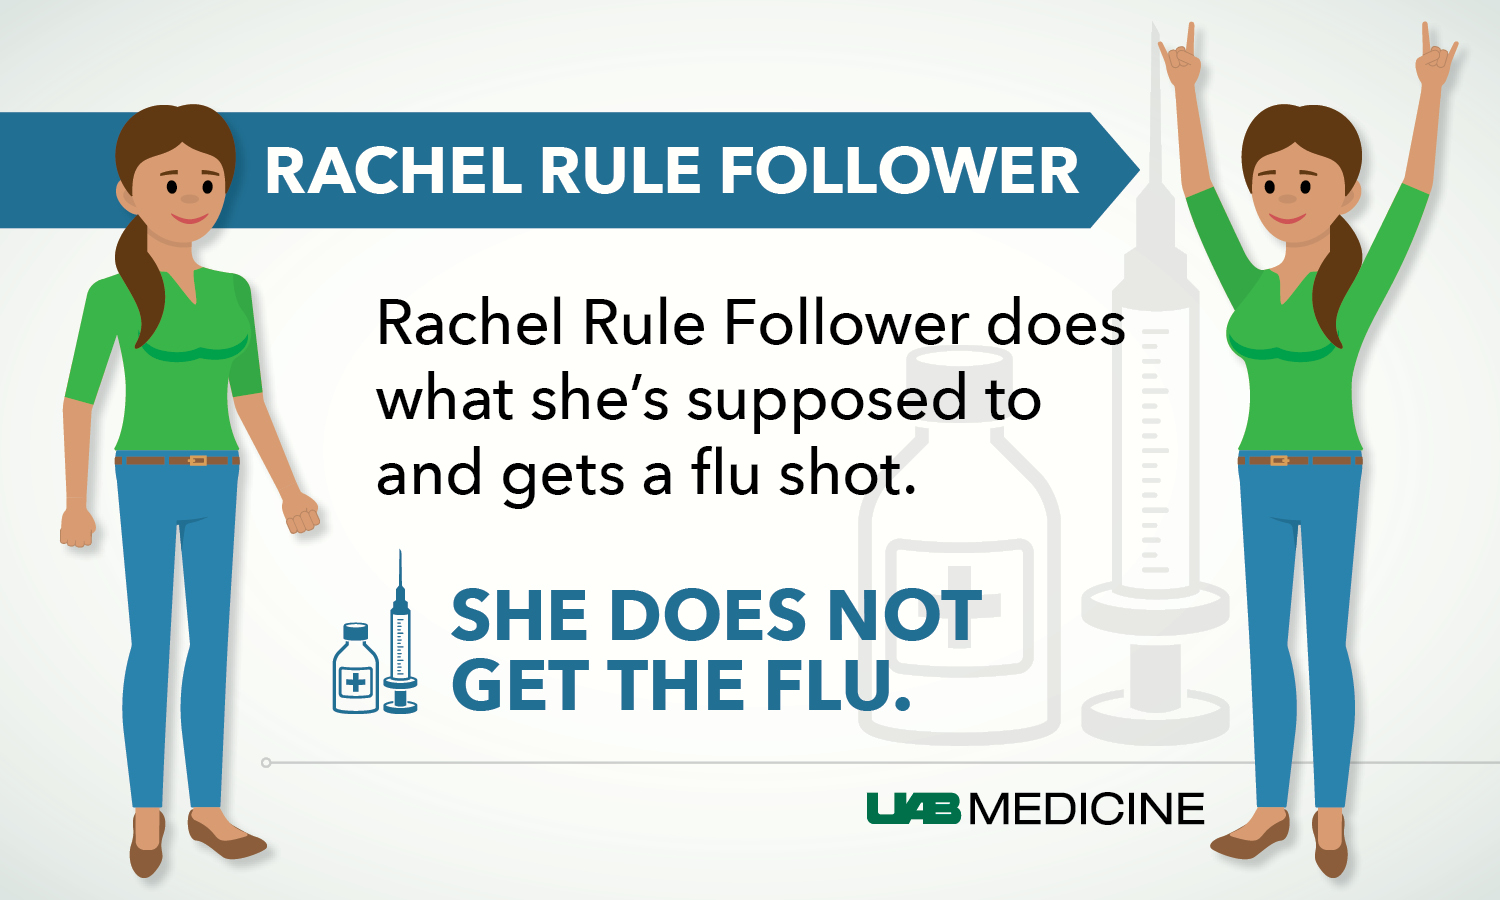 Rachel Rule Follower